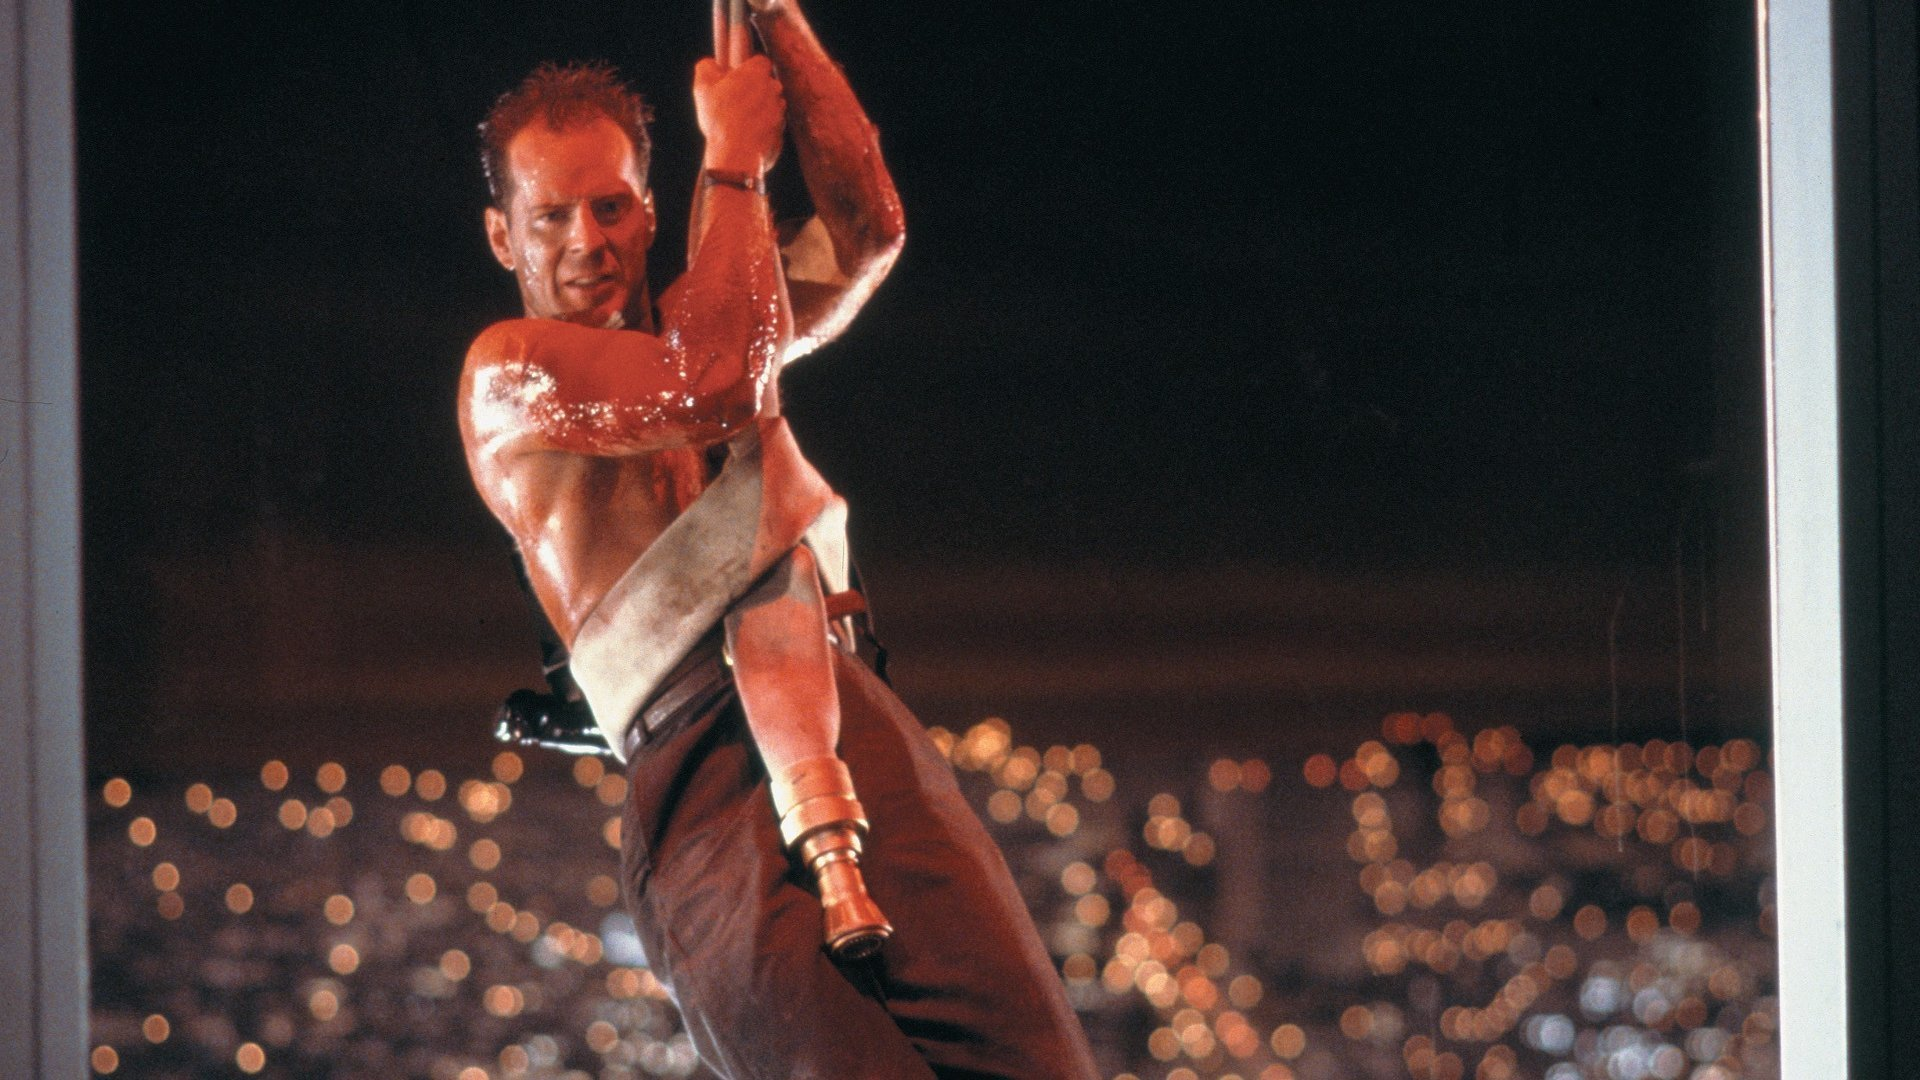 'Die Hard' Writer Confirms the Film is a Christmas Movie